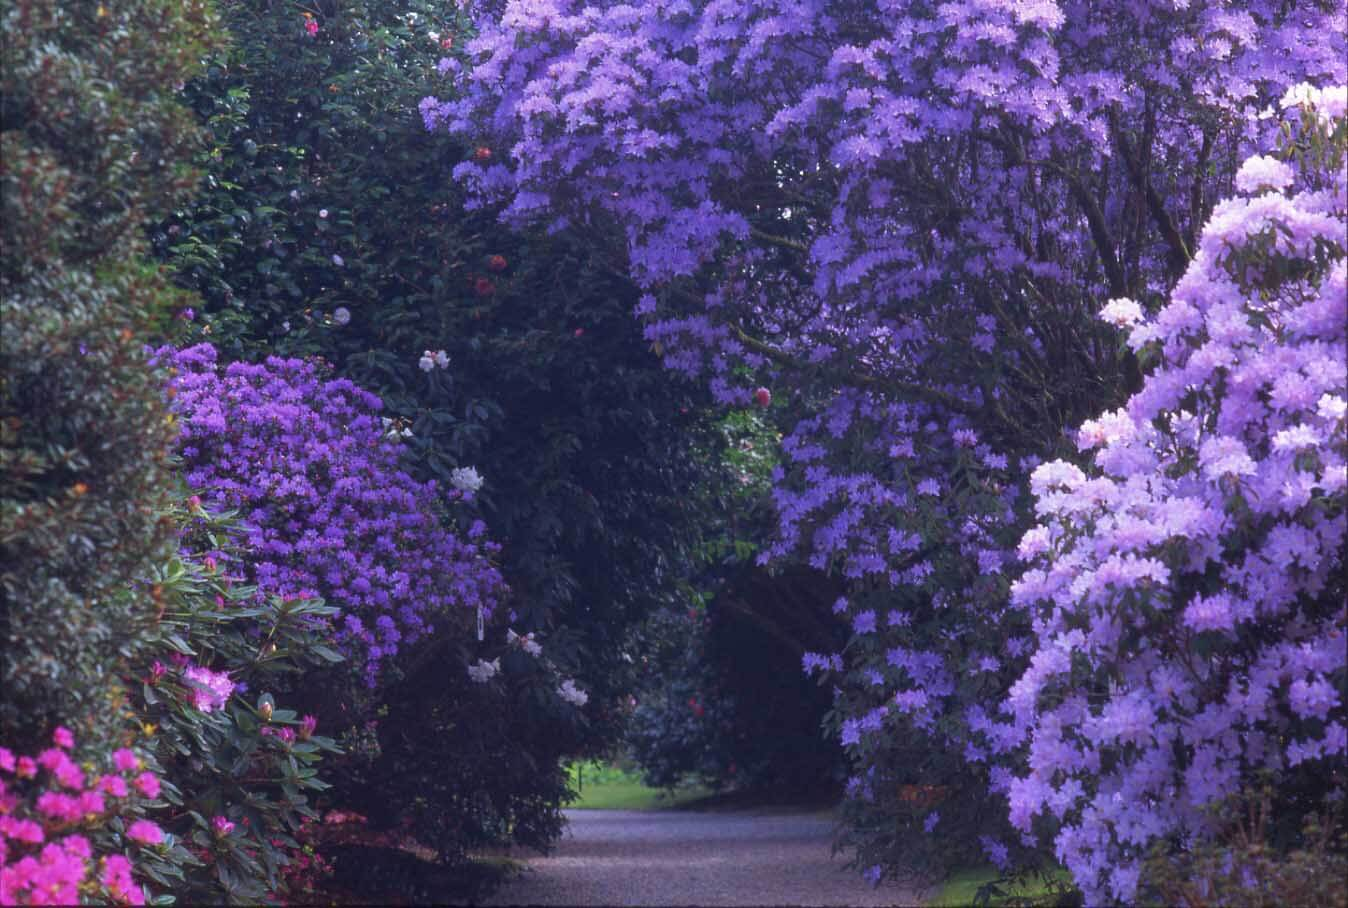 Rhododendrons at Trewithen Gardens in Cornwall